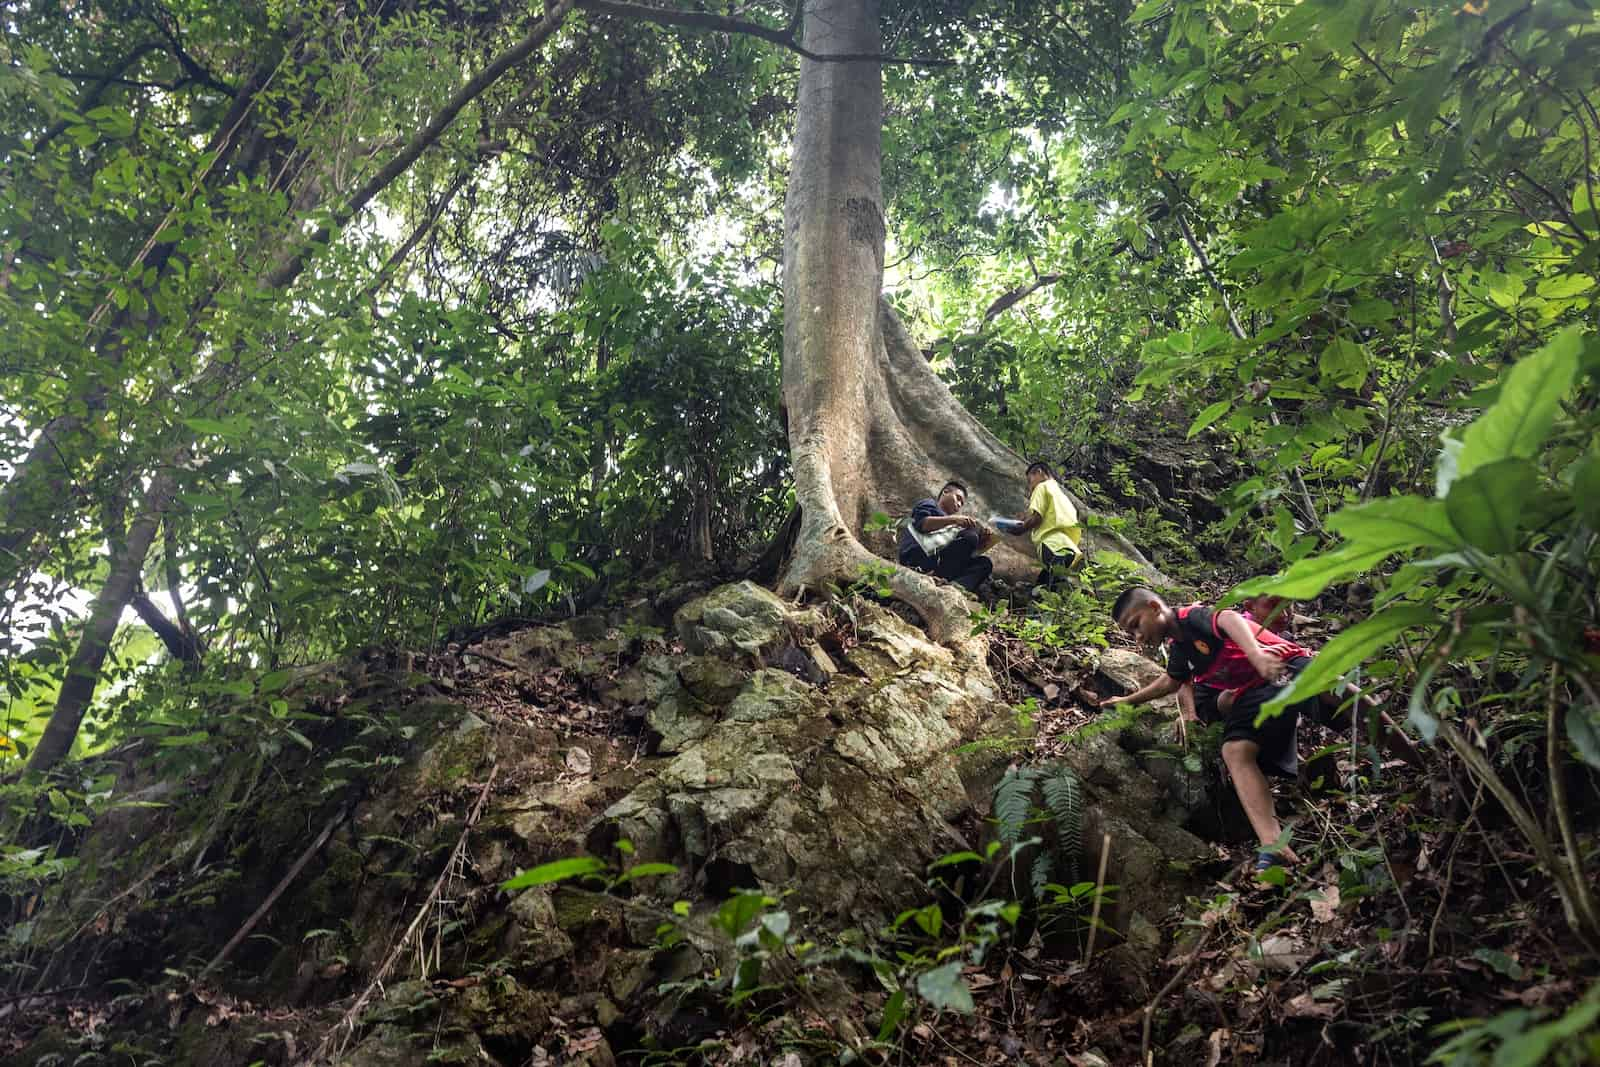 Three boys who live in poverty climb up a steep slope to the roots of a large tree in a forest, surrounded by green canopy. They are learning to protect the rainforest